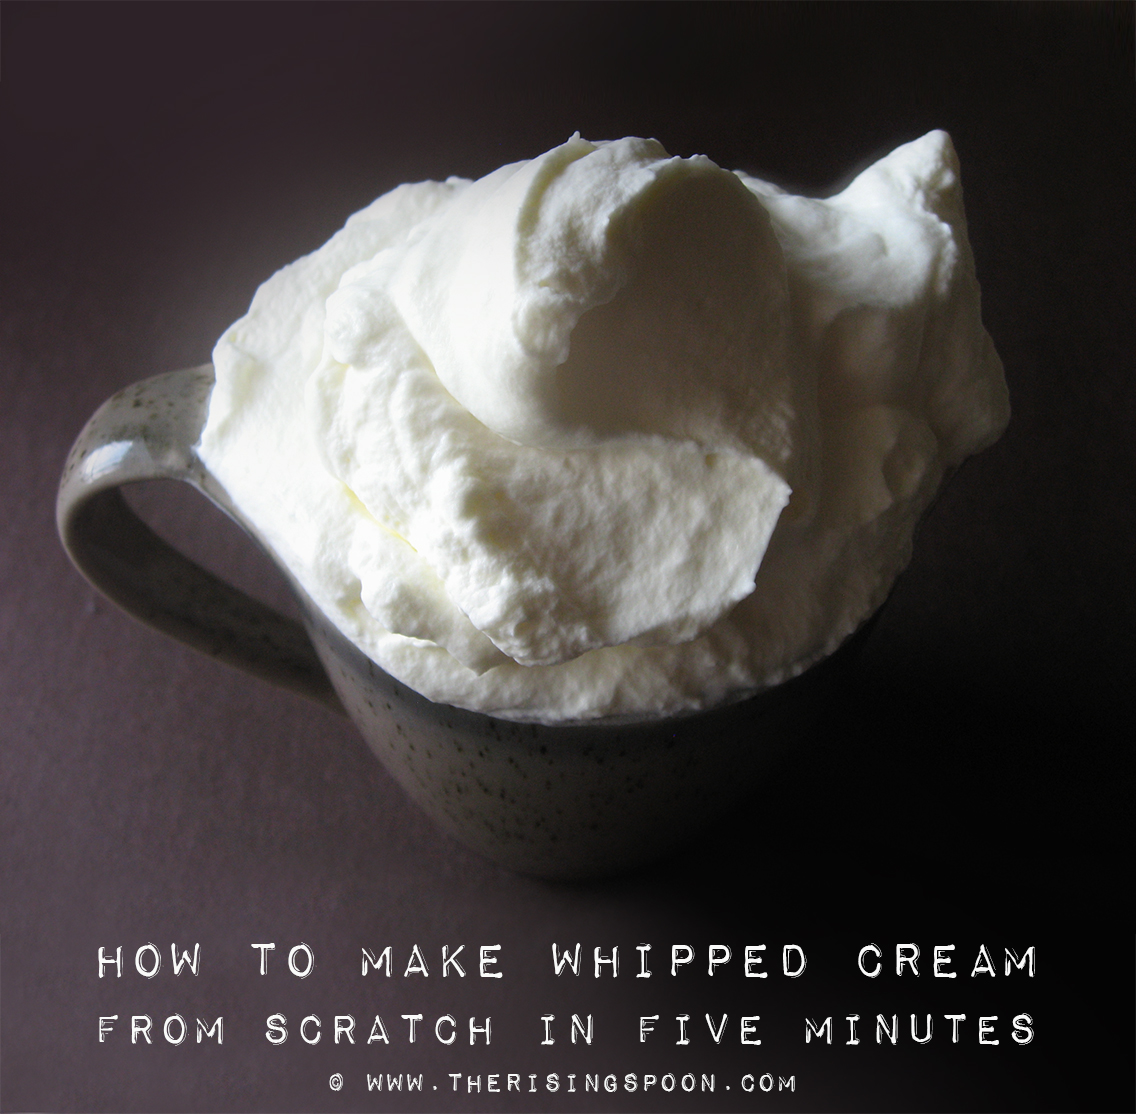 How To Make Whipped Cream From Scratch In FiveMinutes foto